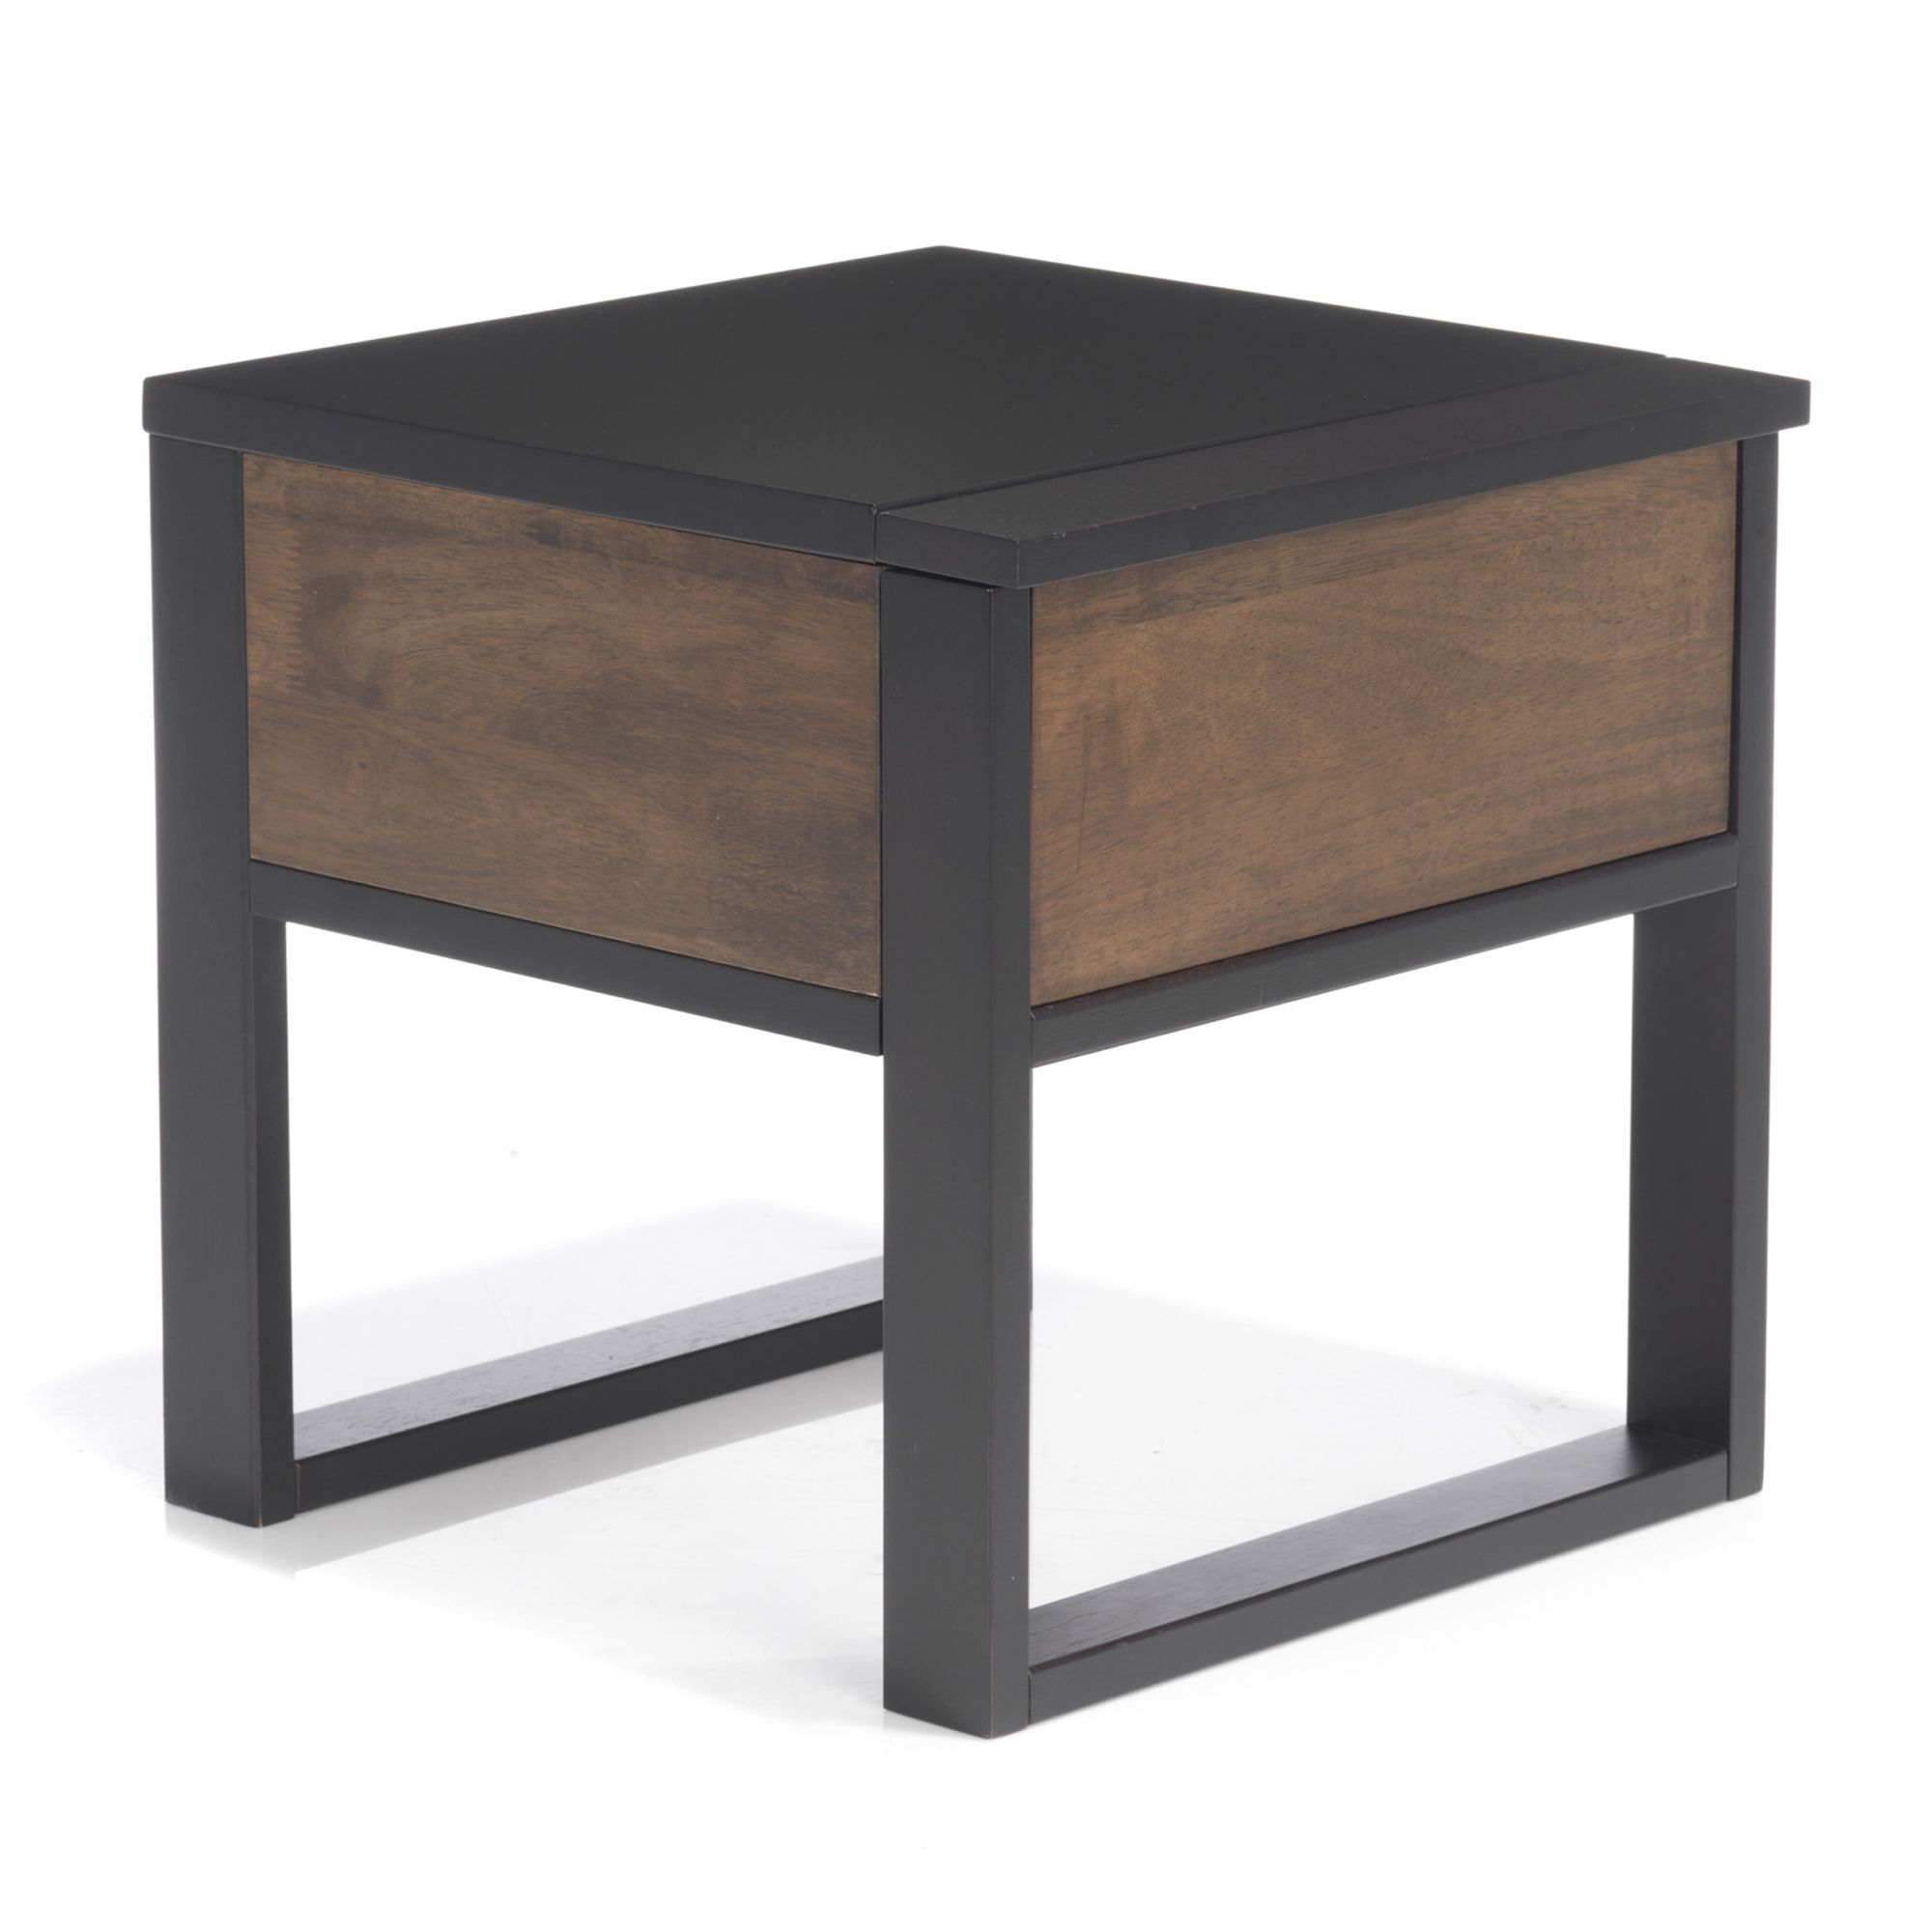 table de chevet 1 tiroir noyer dor et weng spirit tables de chevet tous les meubles. Black Bedroom Furniture Sets. Home Design Ideas